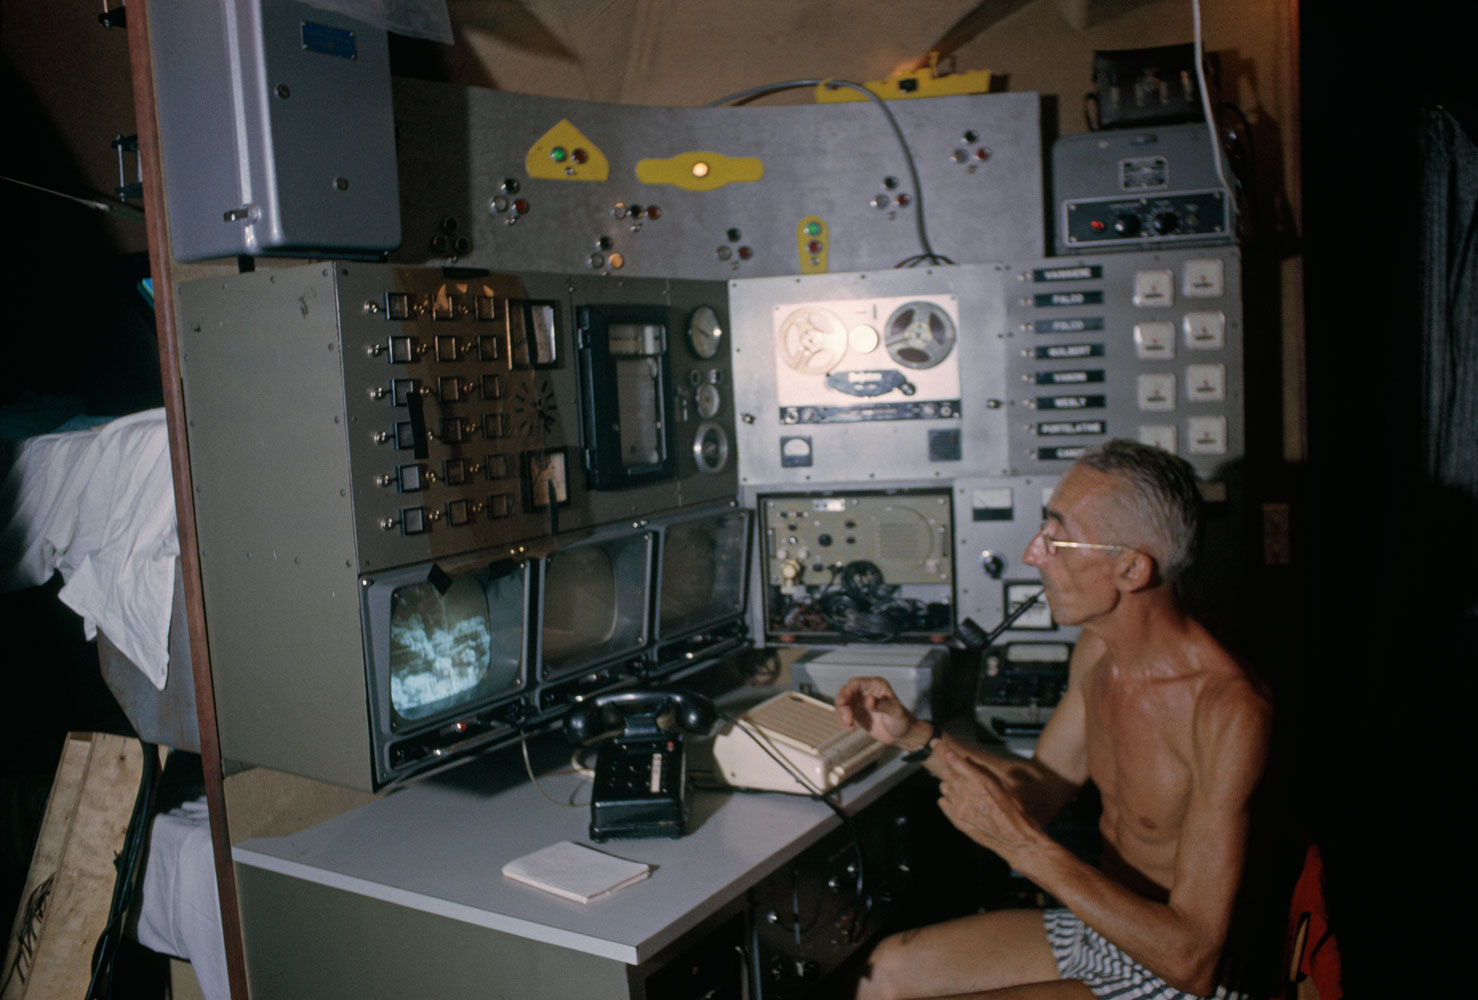 Jacques Cousteau works at an audio-visual machine during the Conshelf II Expedition.